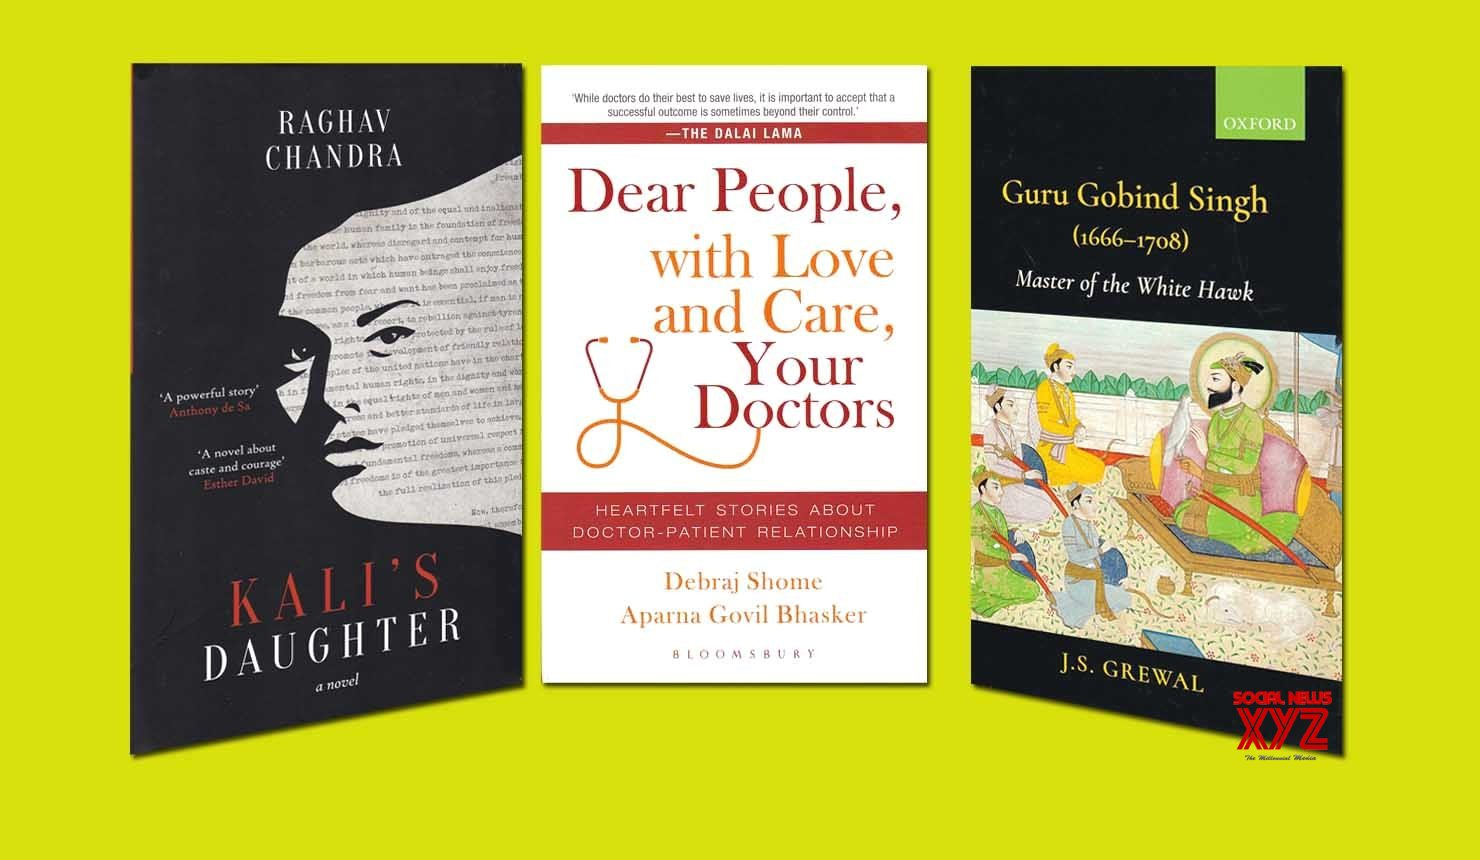 Of Guru Gobind Singh and the creation of the Khalsa, the churning within a Dalit IFS officer, heartfelt stories by doctors & patients